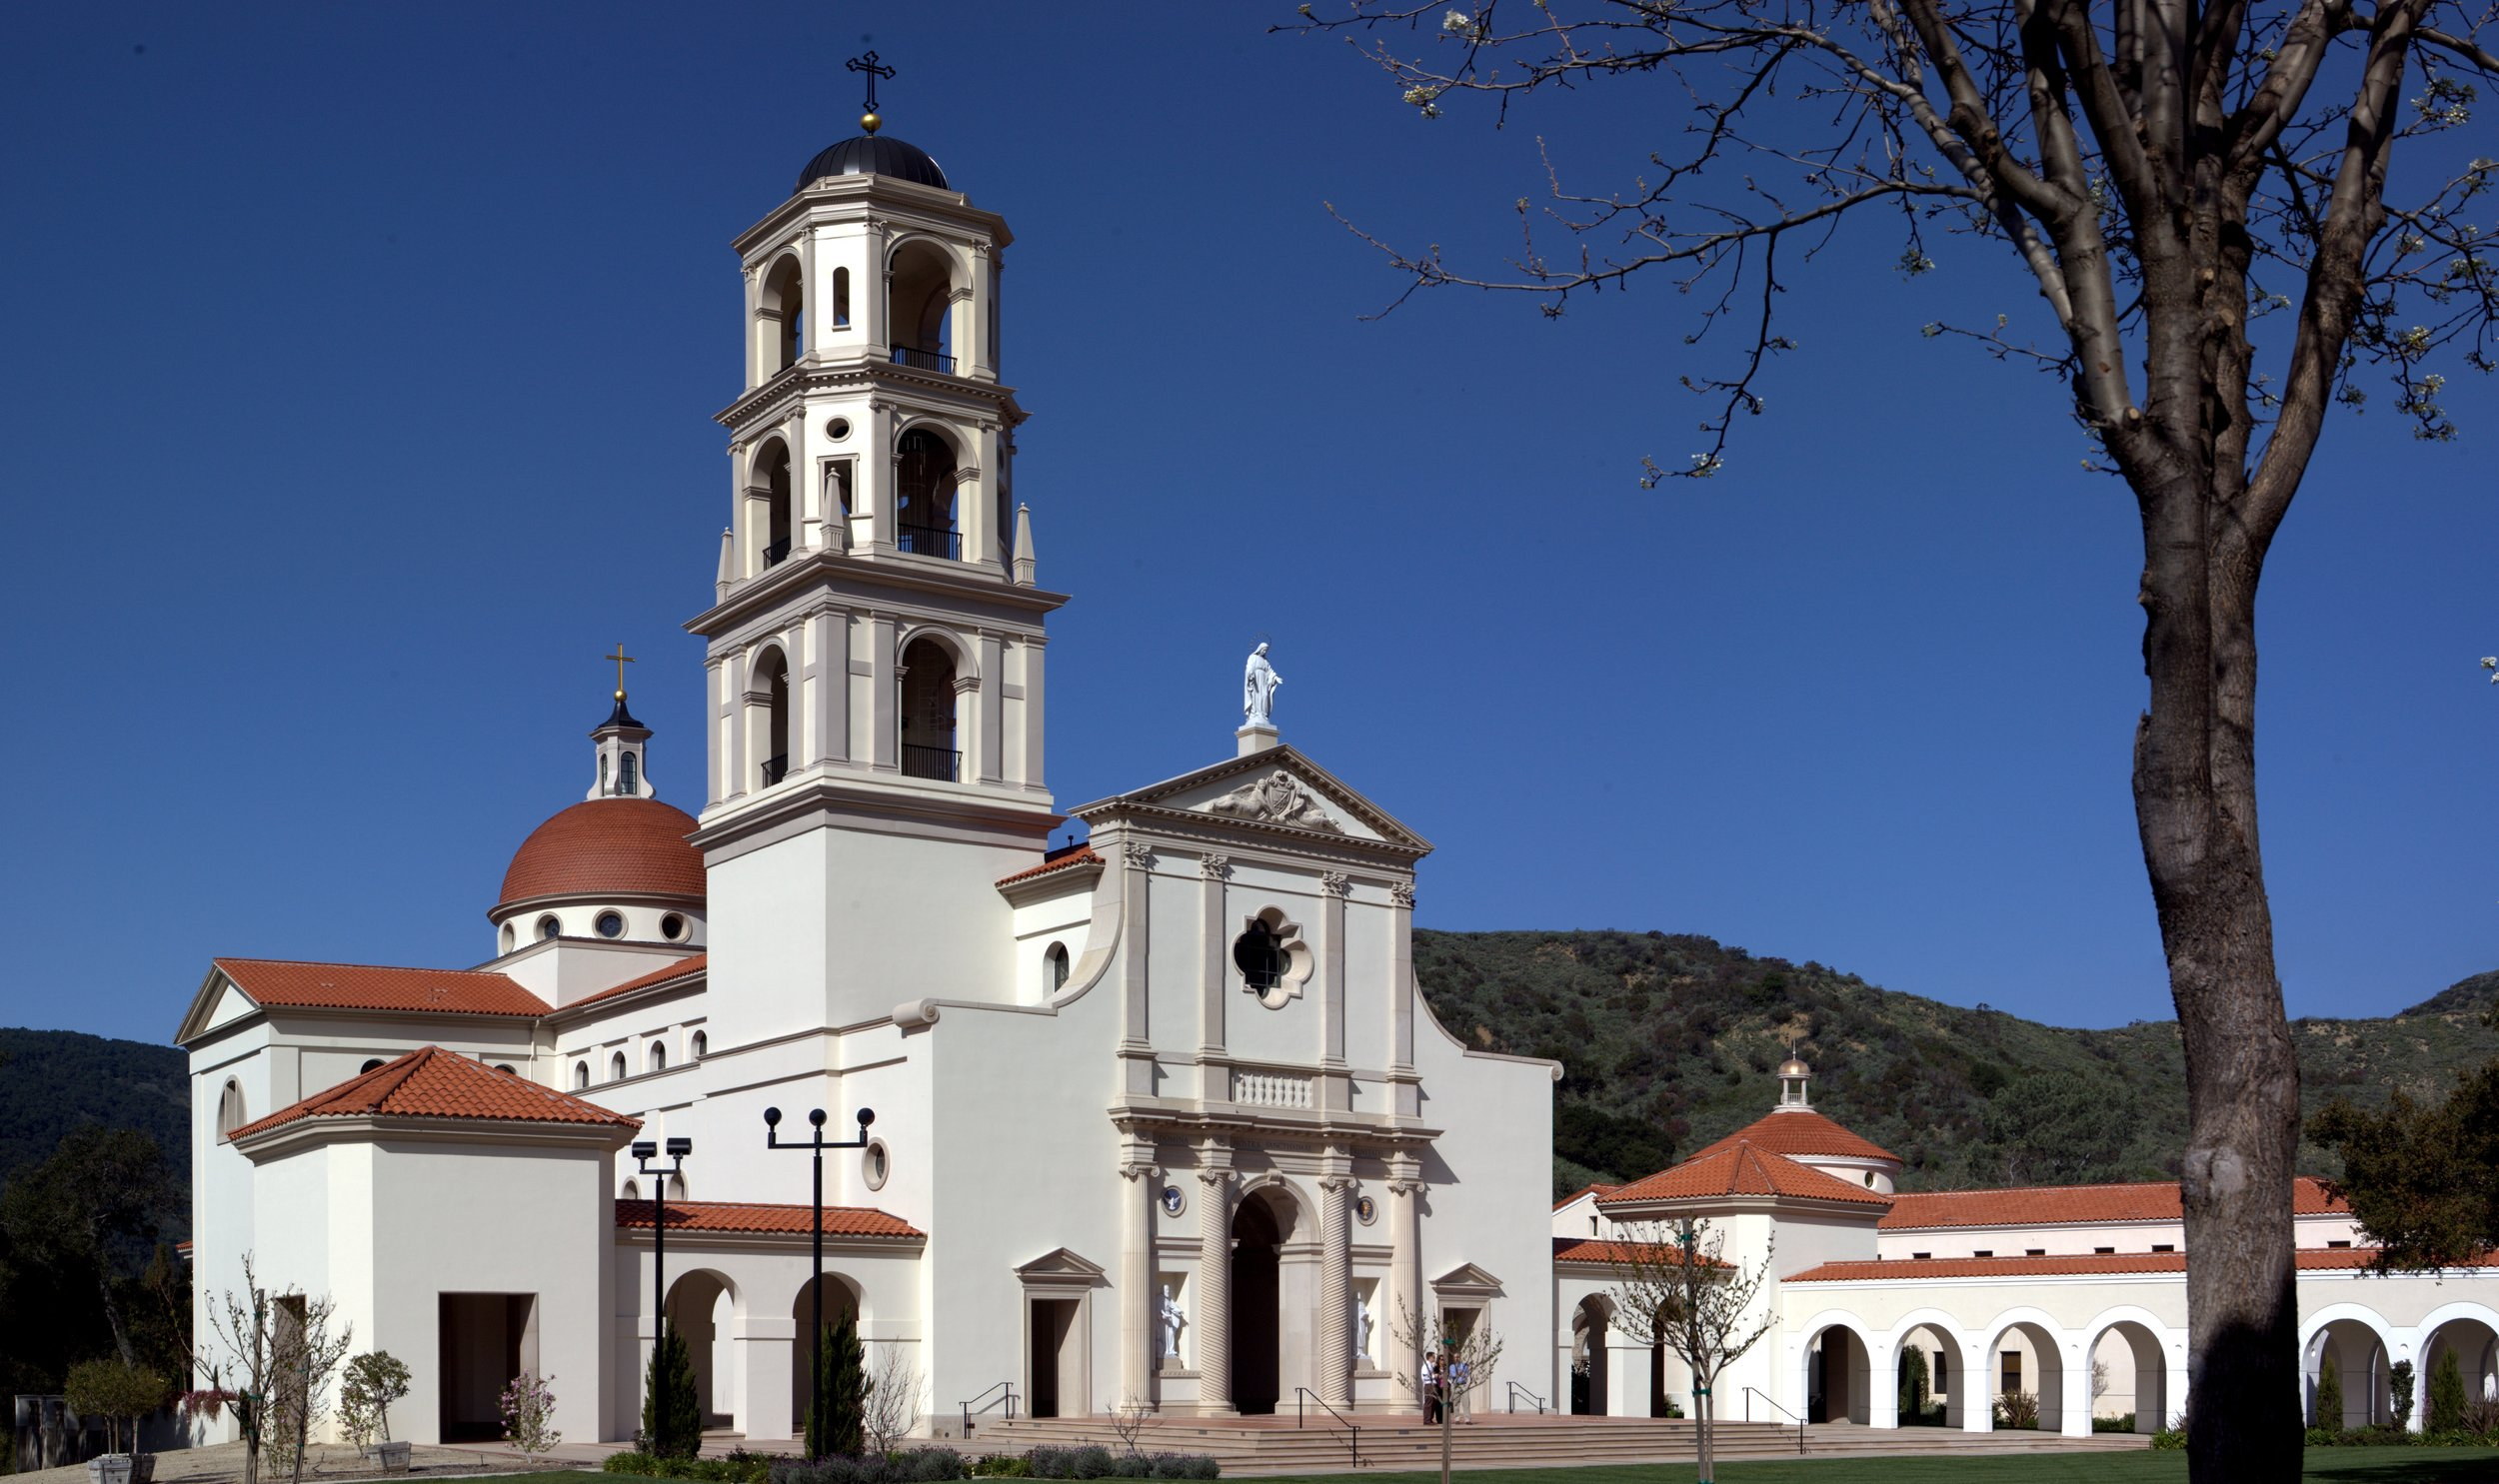 Our Lady of the Most Holy Trinity Chapel at Thomas Aquinas College in Santa Paula, California, built by Duncan Stroik | Photo courtesy of Thomas Aquinas College.